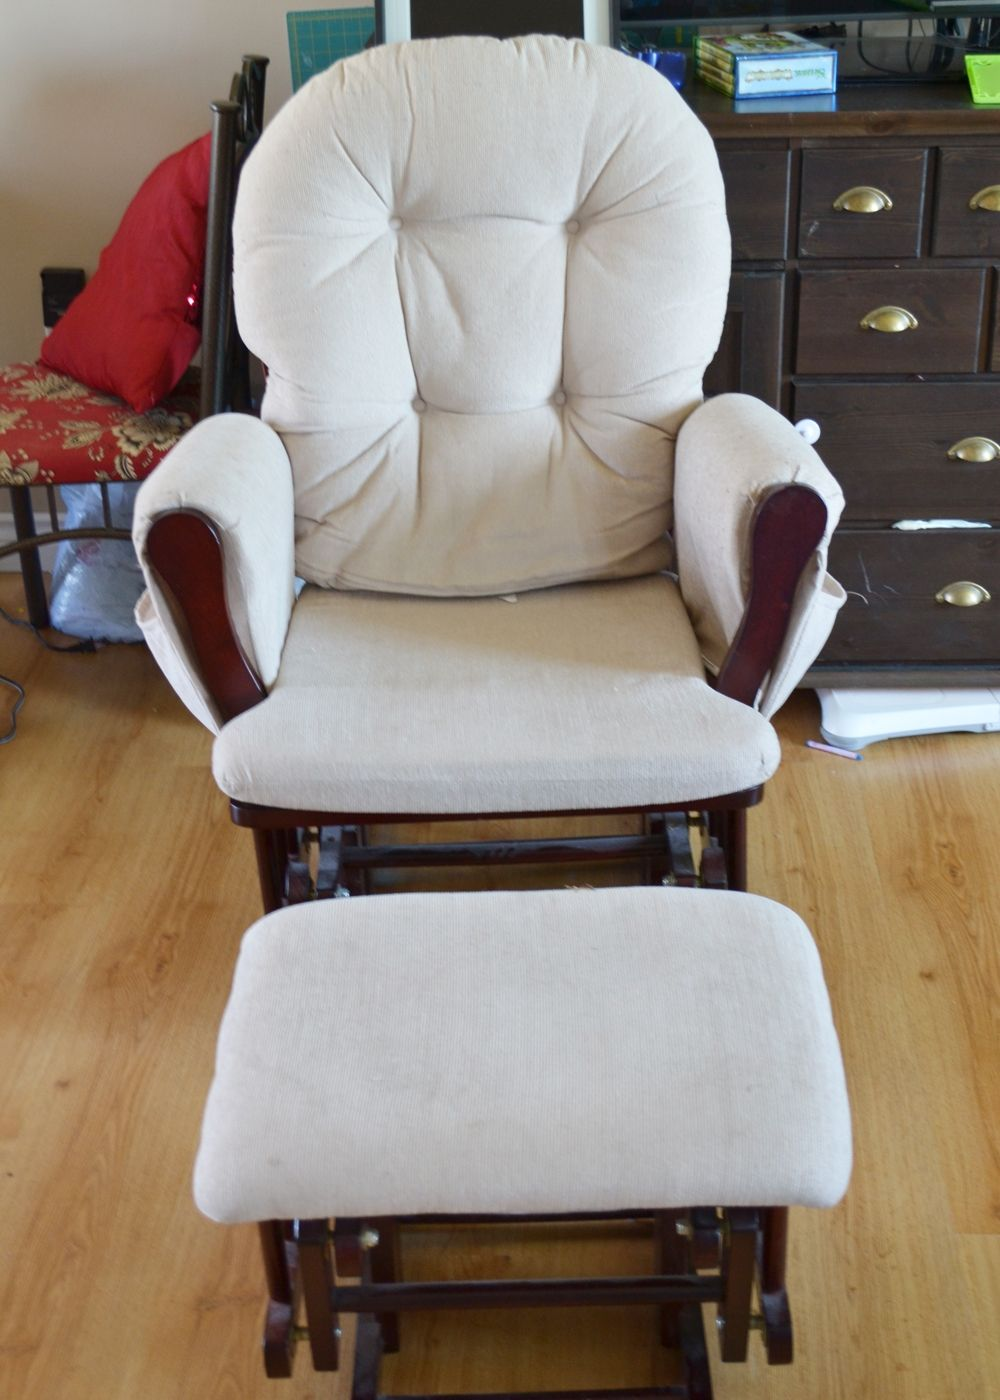 Upholstered rocking chairs swivel rocking chair covers  images  pinterest